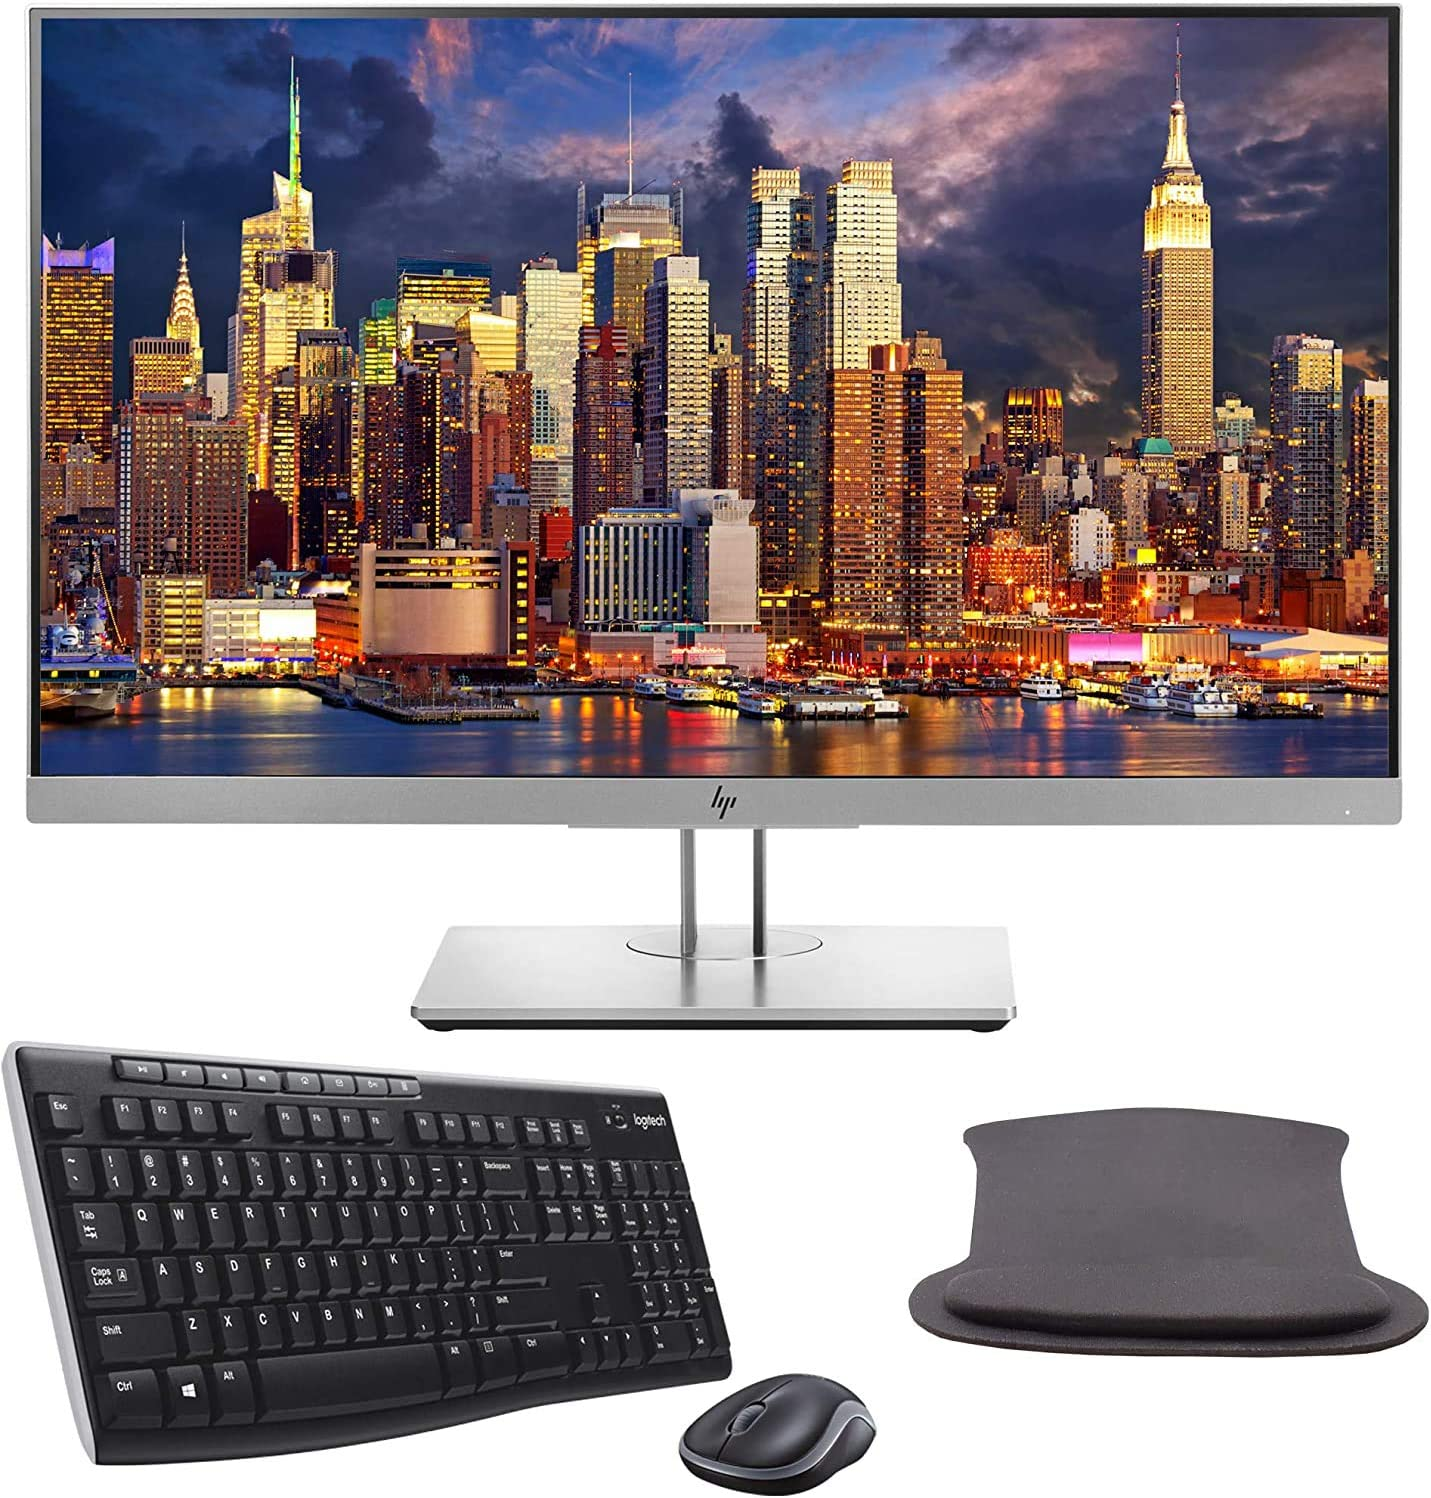 HP EliteDisplay E243 24 Inch 1920 x 1080 (1FH47A8) Full HD IPS LED-Backlit LCD Monitor Bundle with HDMI, VGA, DisplayPort, Gel Mouse Pad, and MK270 Wireless Keyboard and Mouse Combo